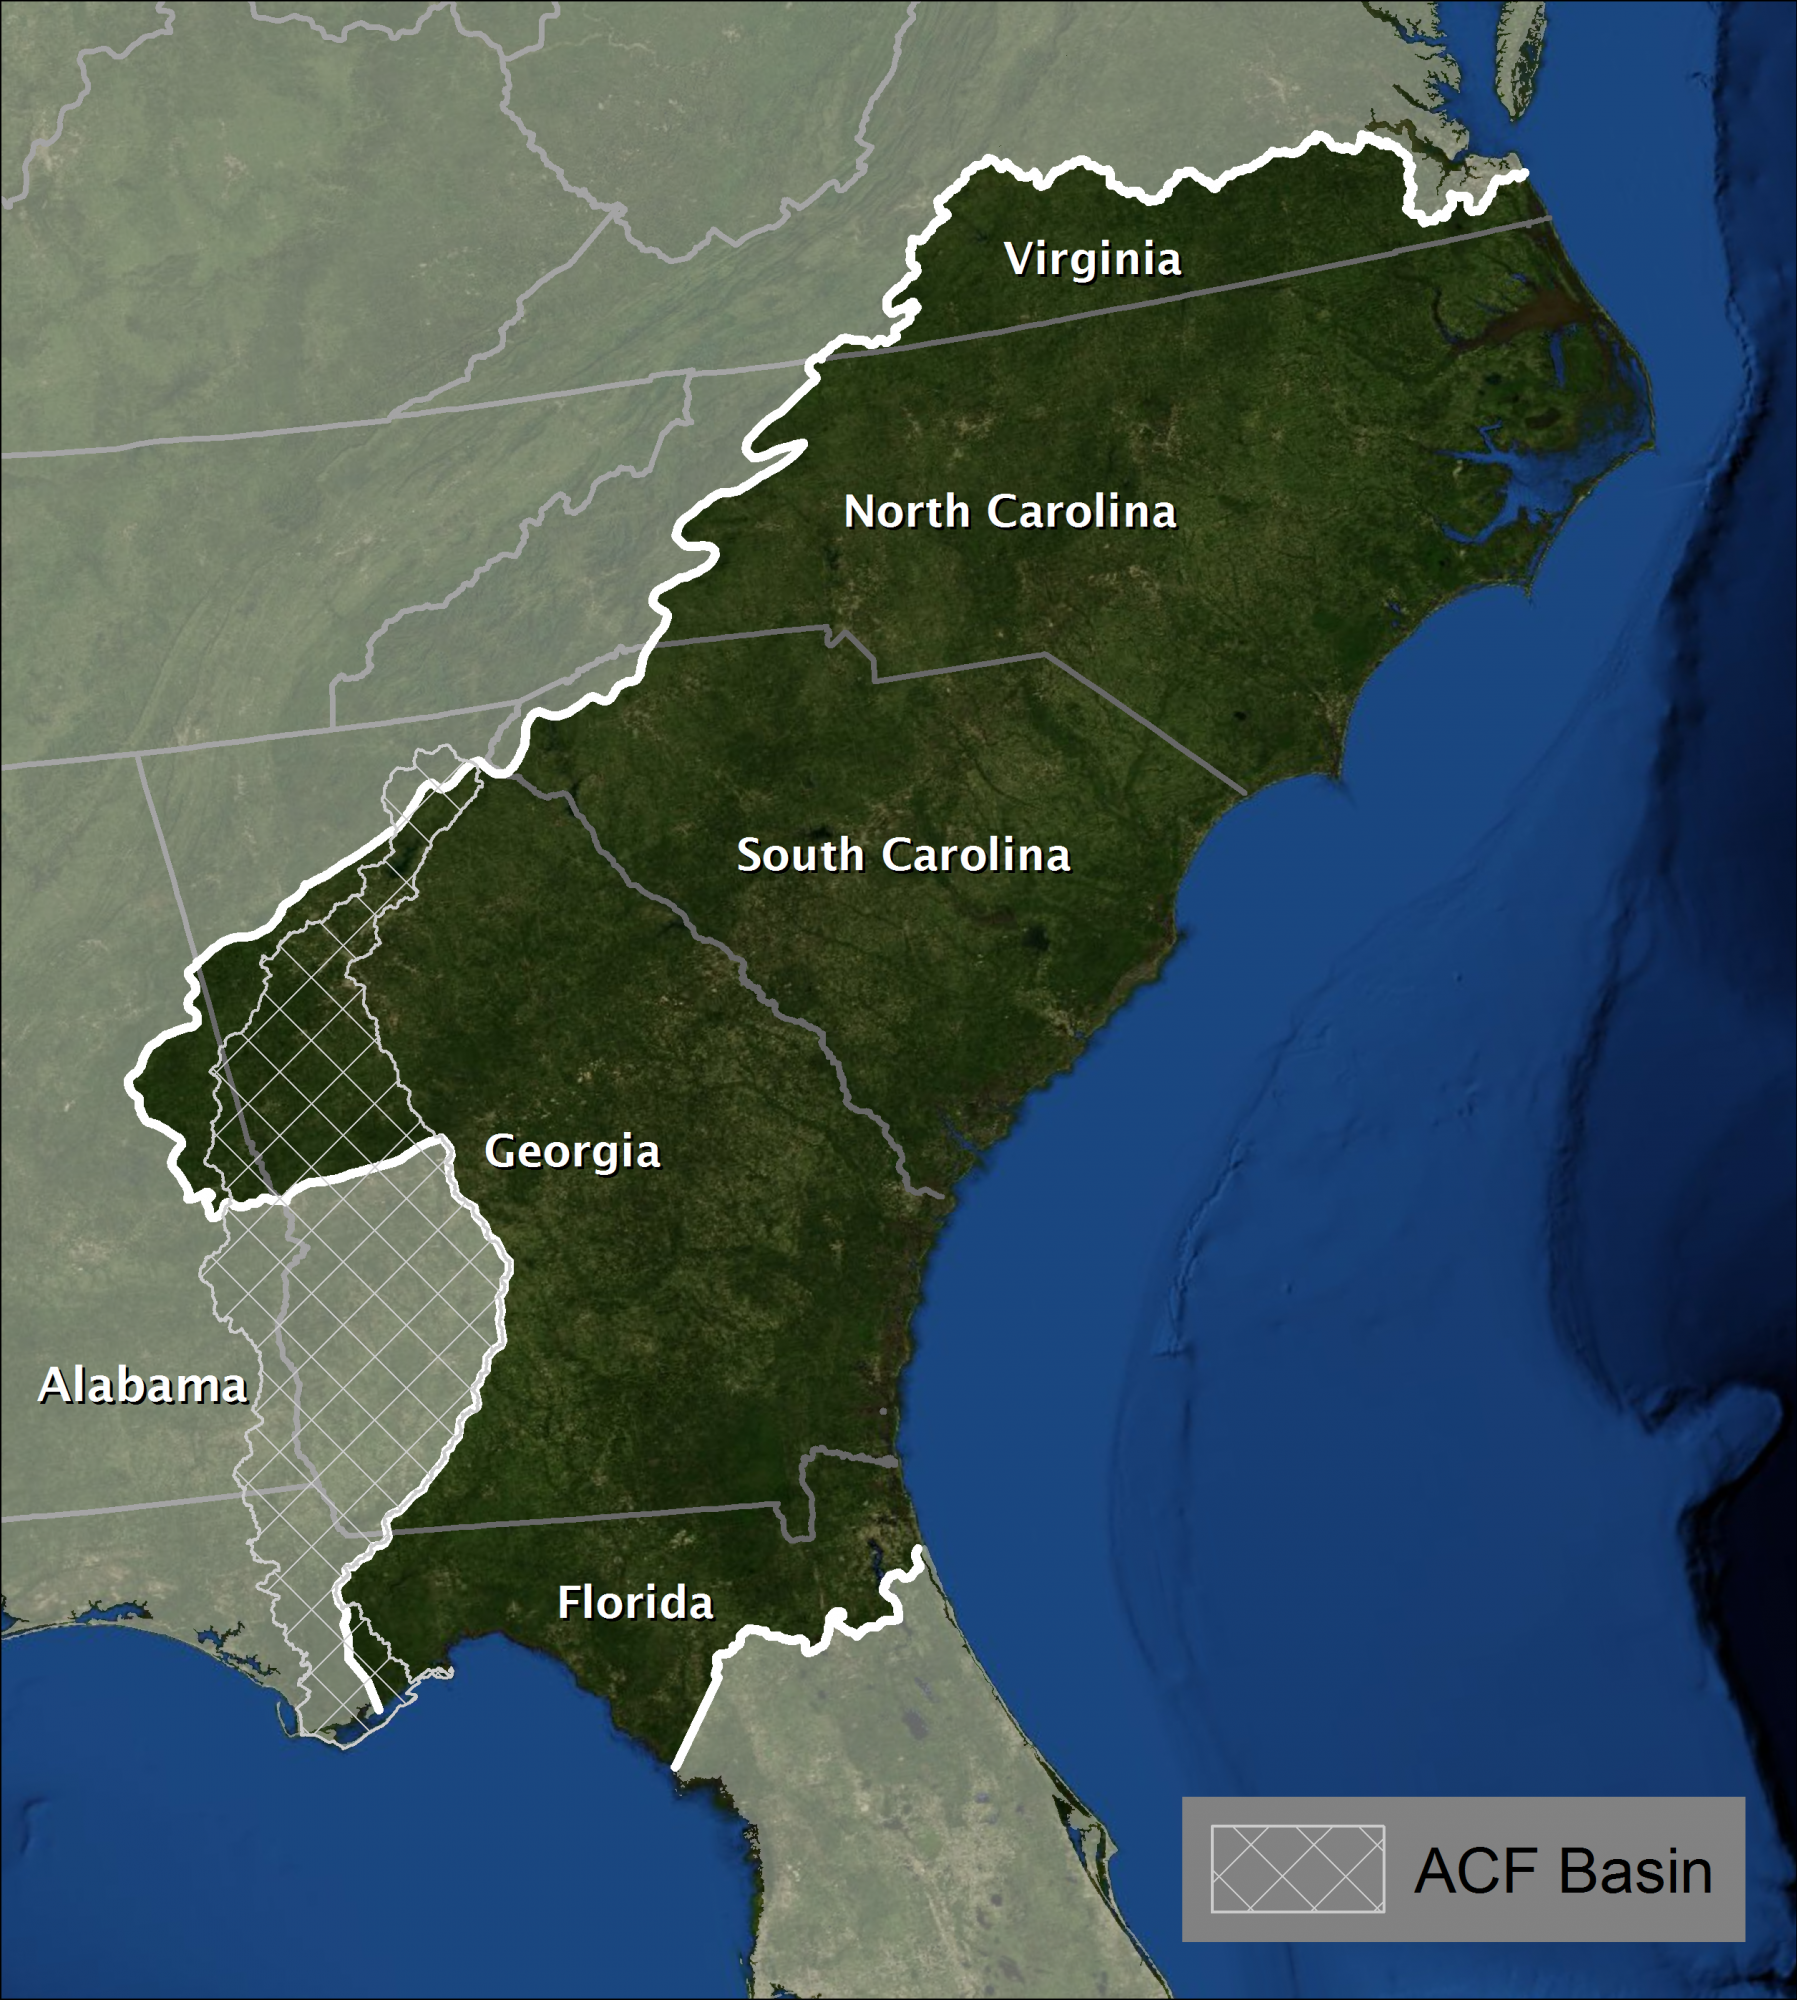 The South Atlantic LCC covers a wide expanse of piedmont and coastal plains from southern Virginia to northern Florida.